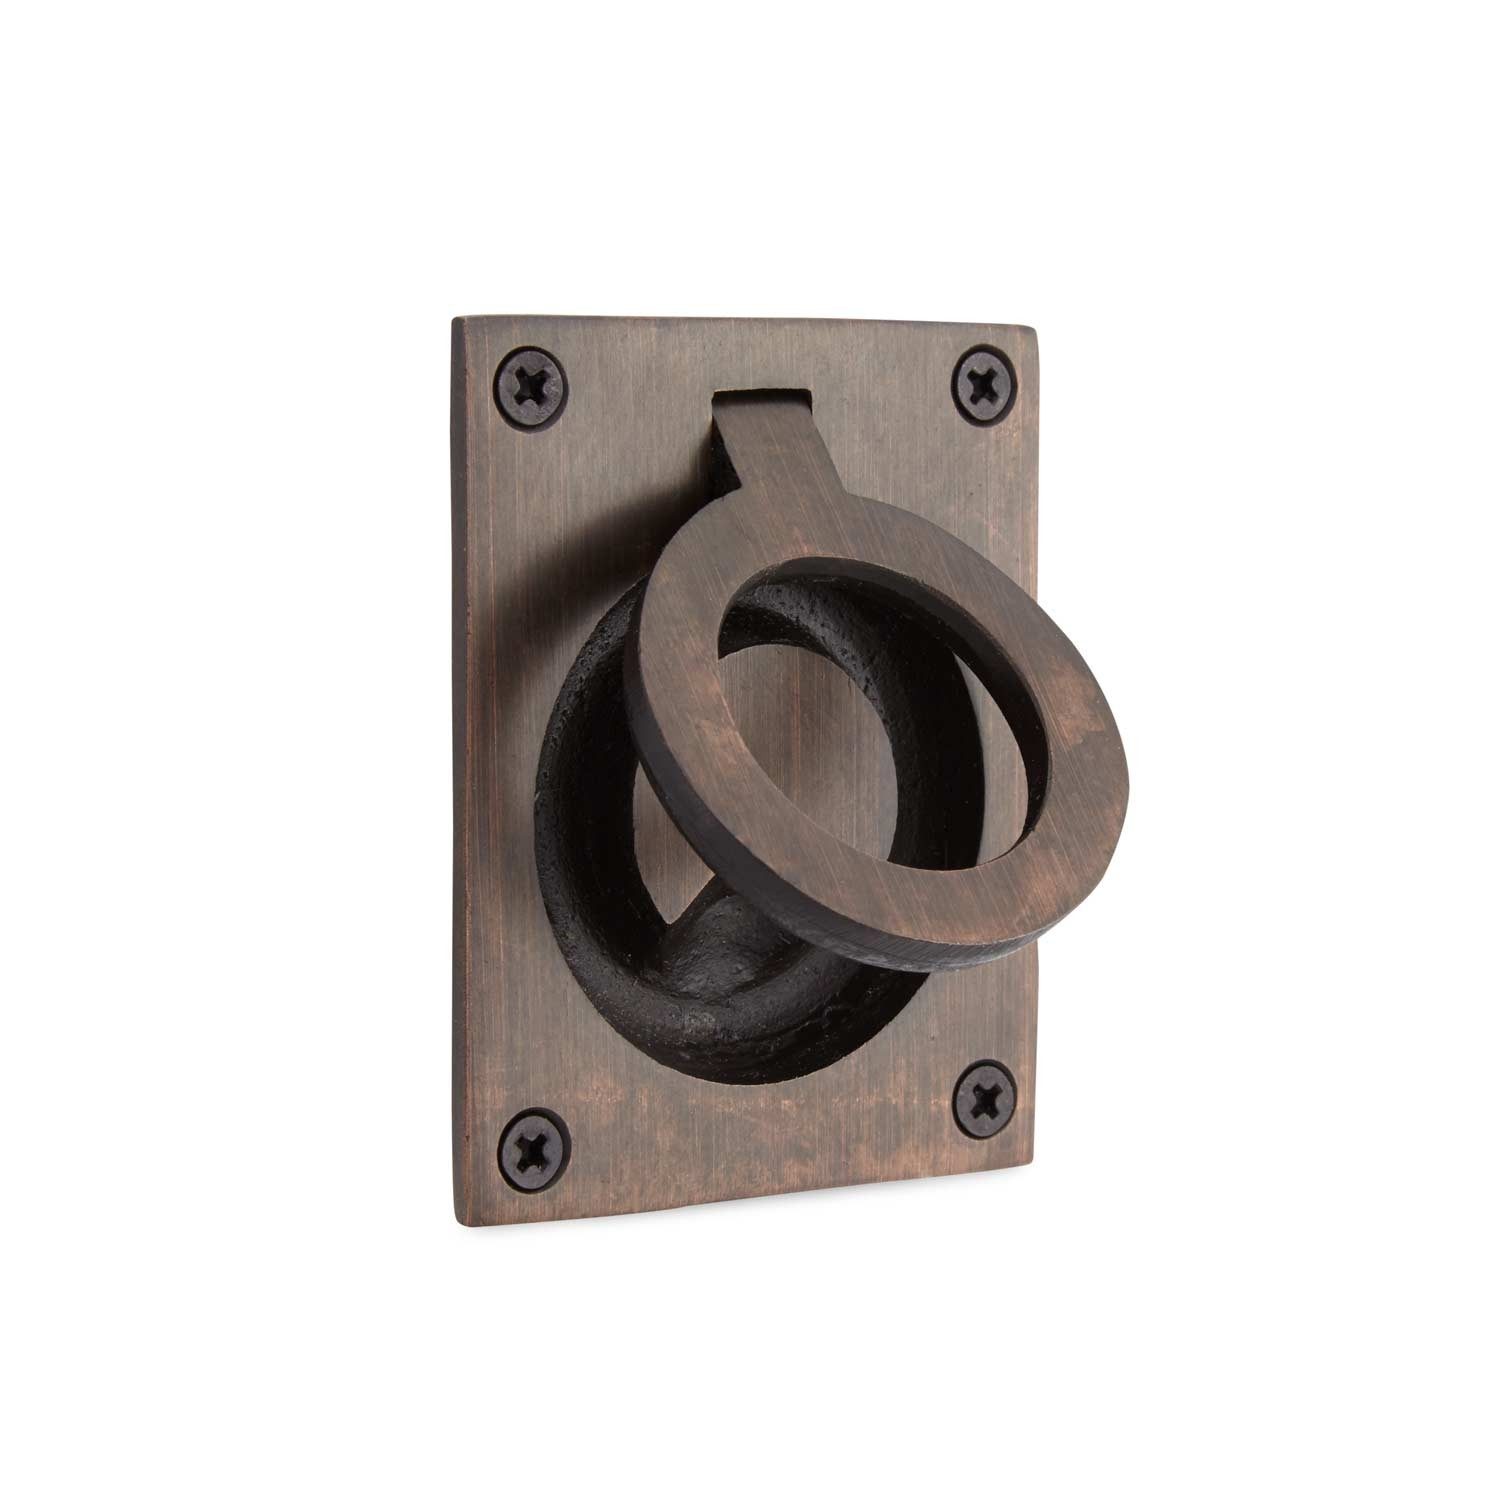 Wrought Iron Cabinet Door Knobs